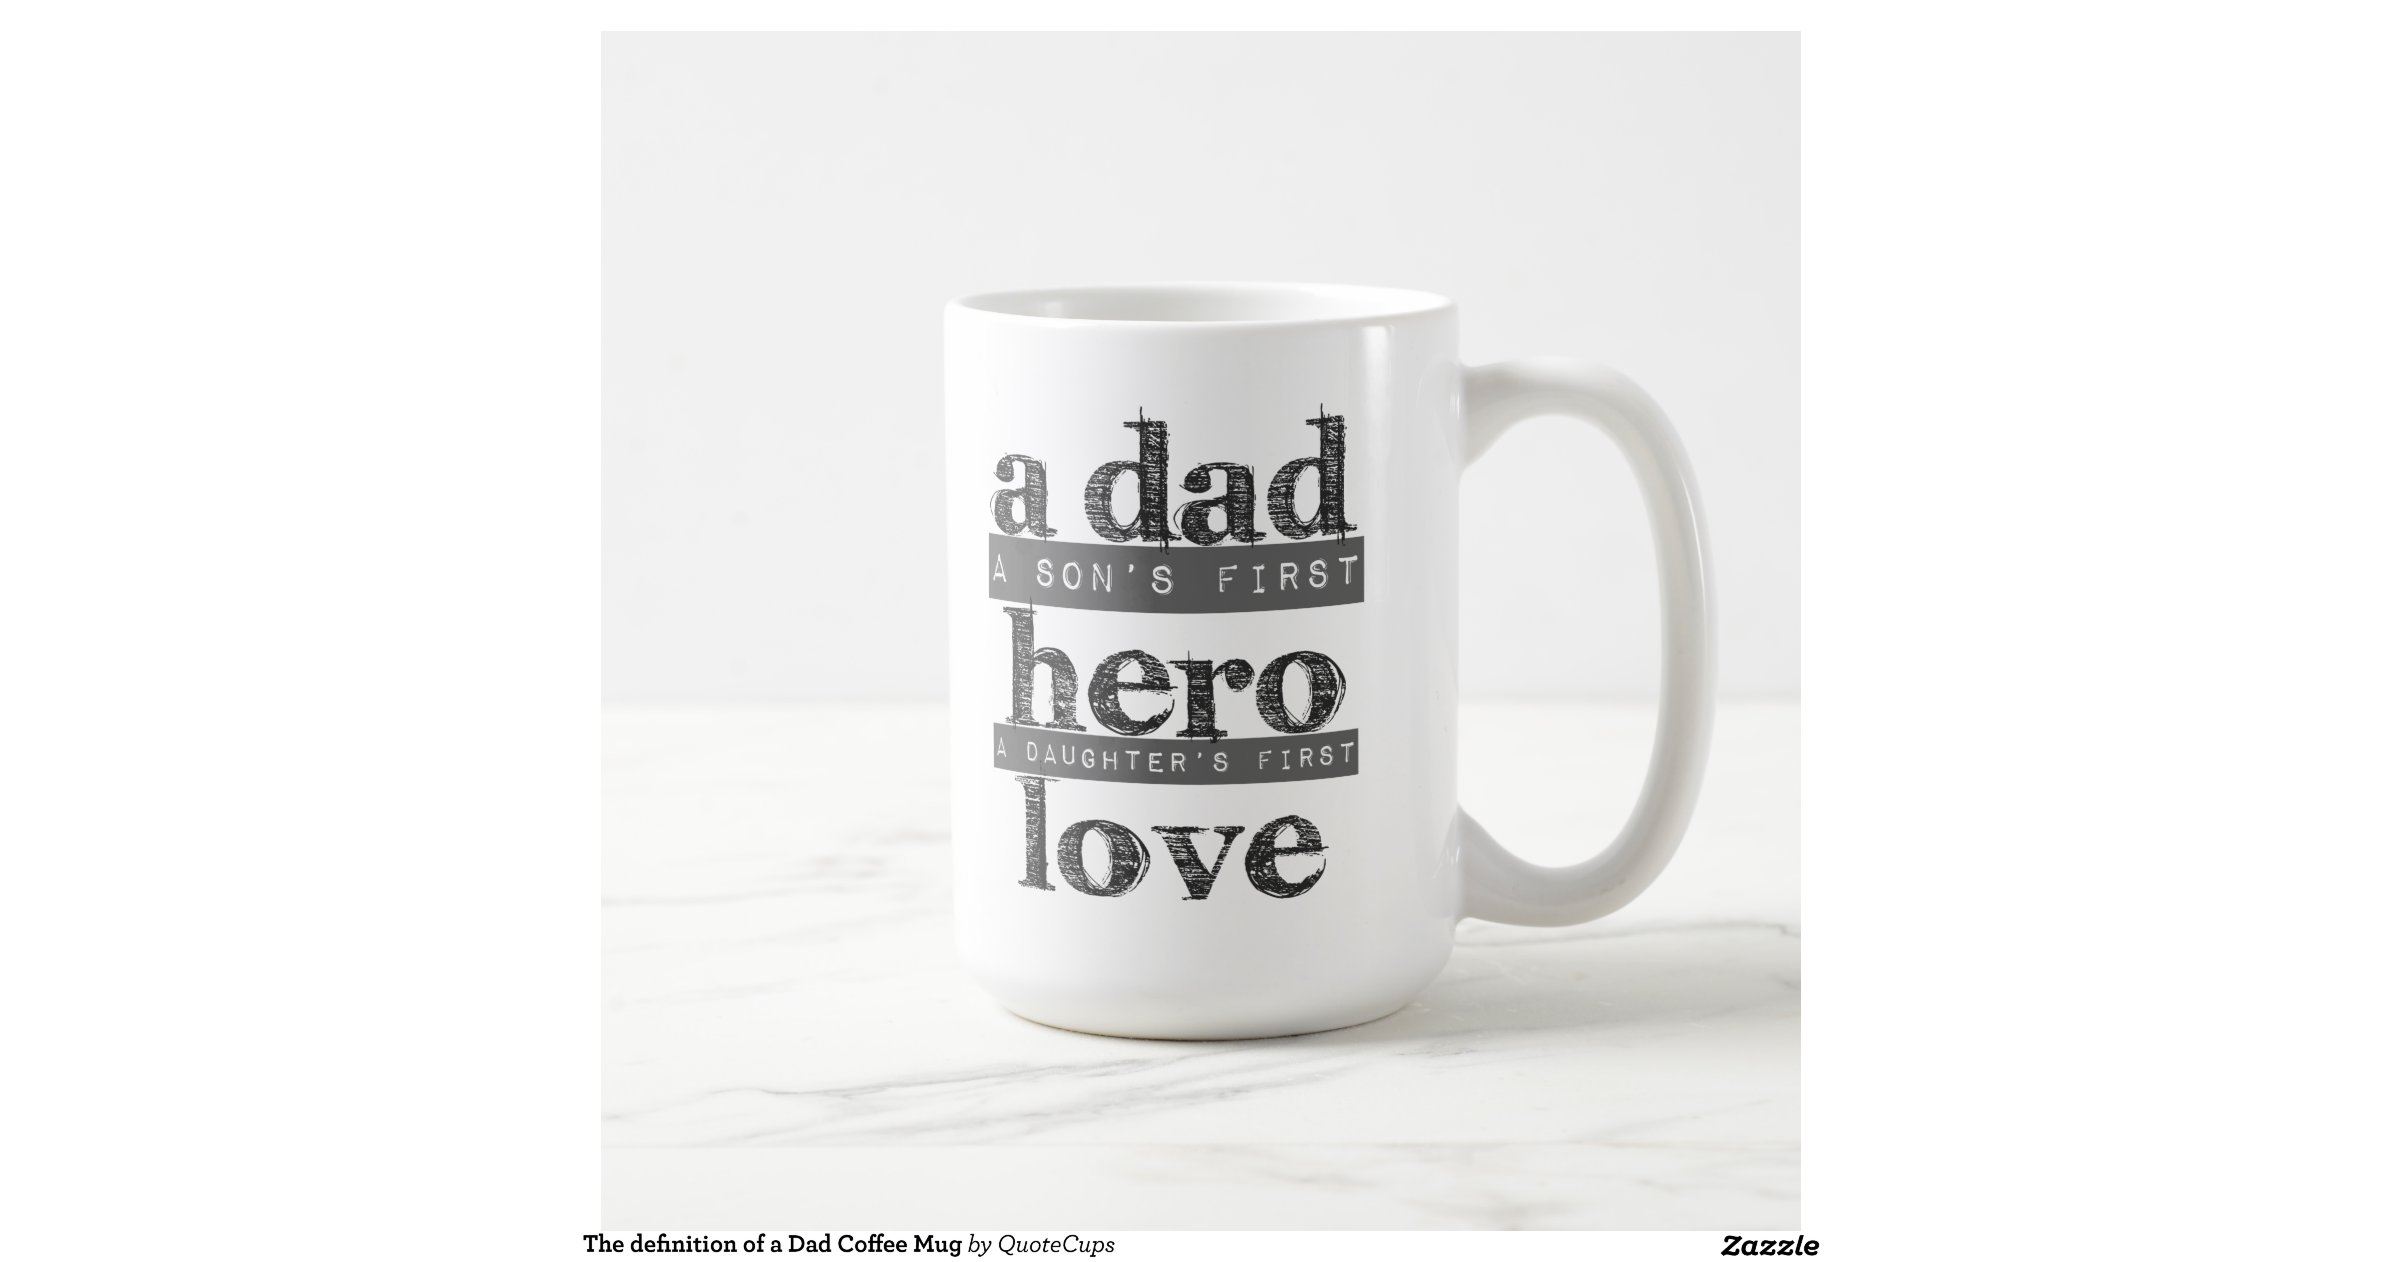 What Is Coffee Maker Definition : the_definition_of_a_dad_coffee_mug-ra58f7418f48e4974a79c0f5aa523b0c5_x7jsg_8byvr_1200.jpg?view ...